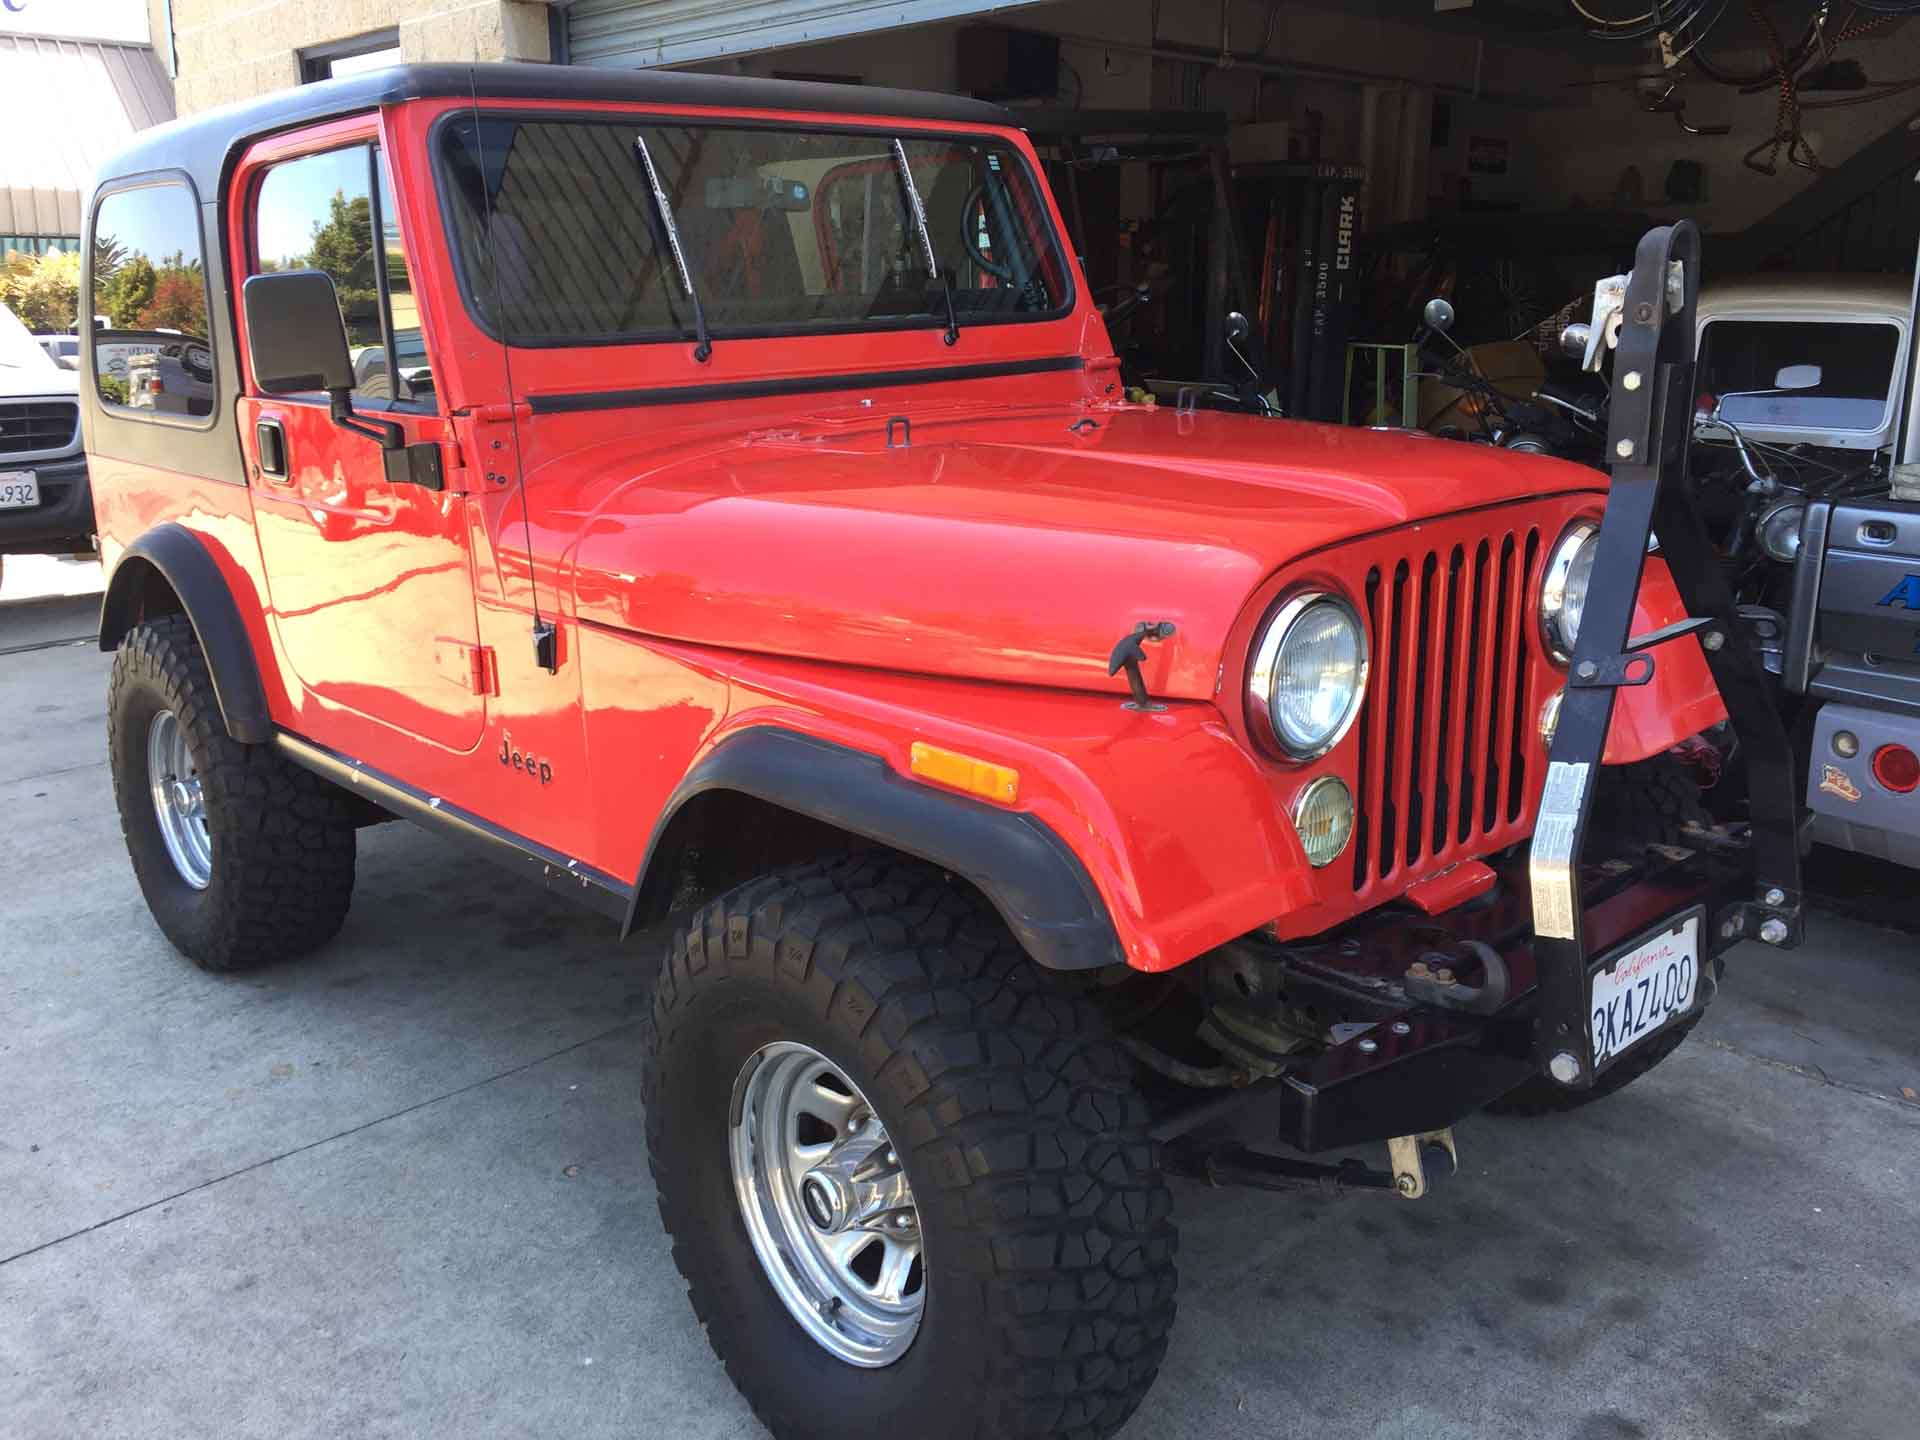 Jeep - After